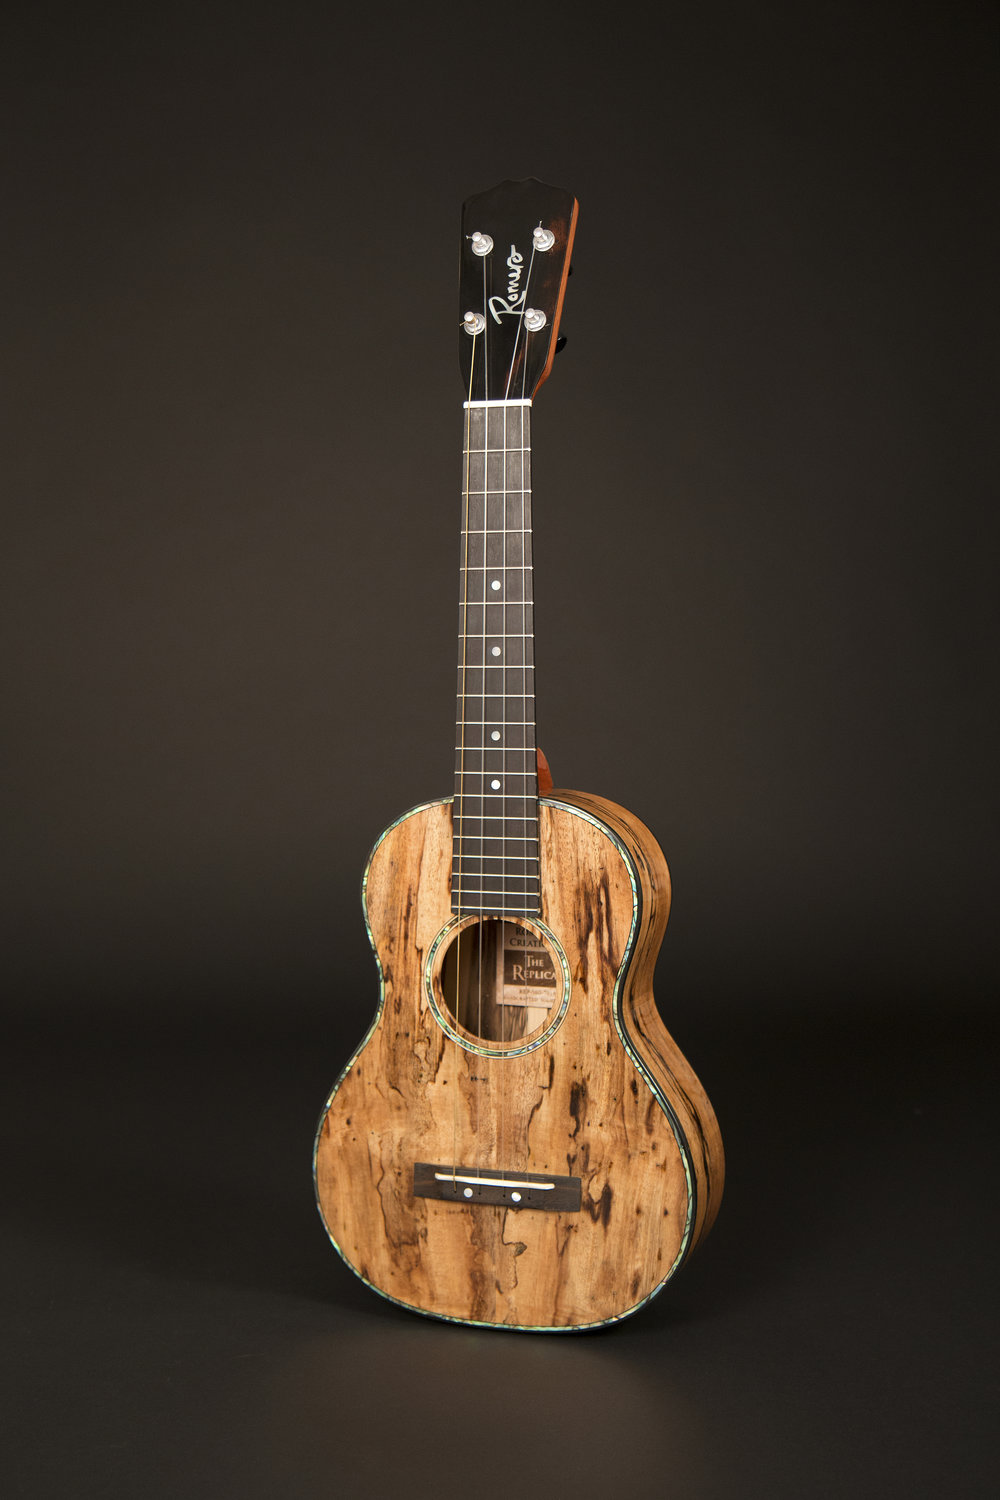 The Replica Spalted Mango